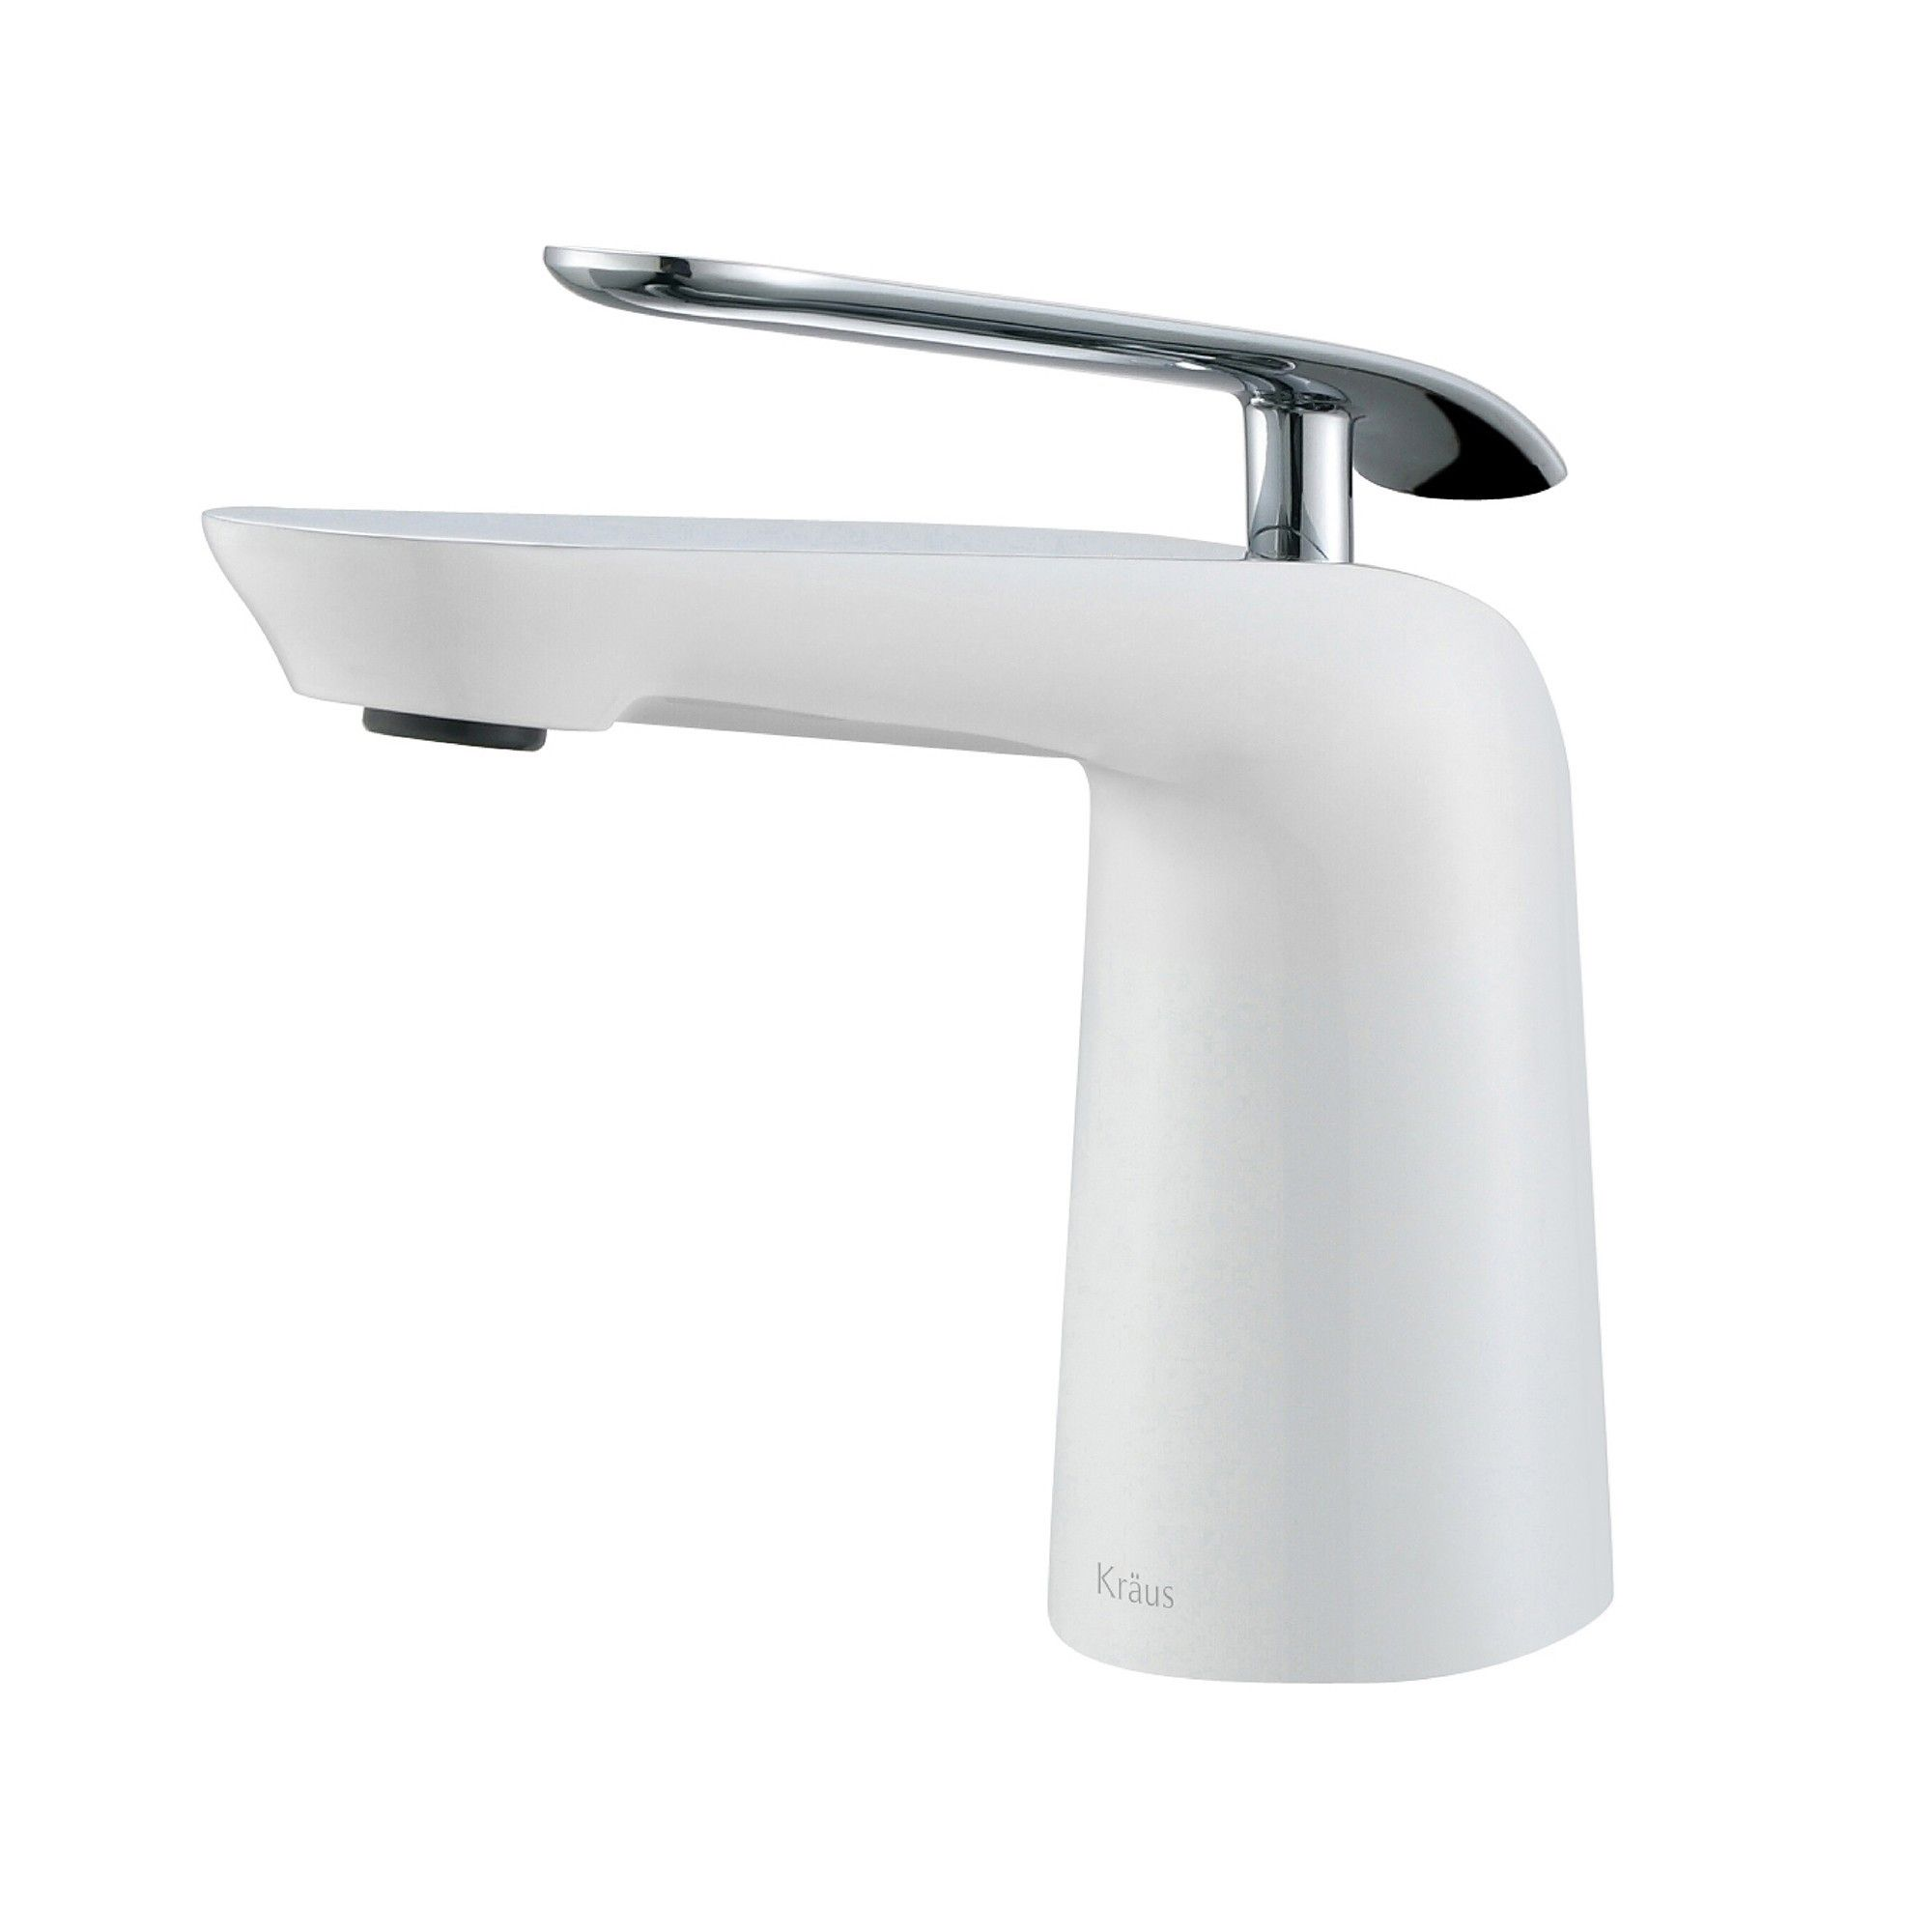 20 Best Bathroom Faucets Stylish Bathtub And Sink To